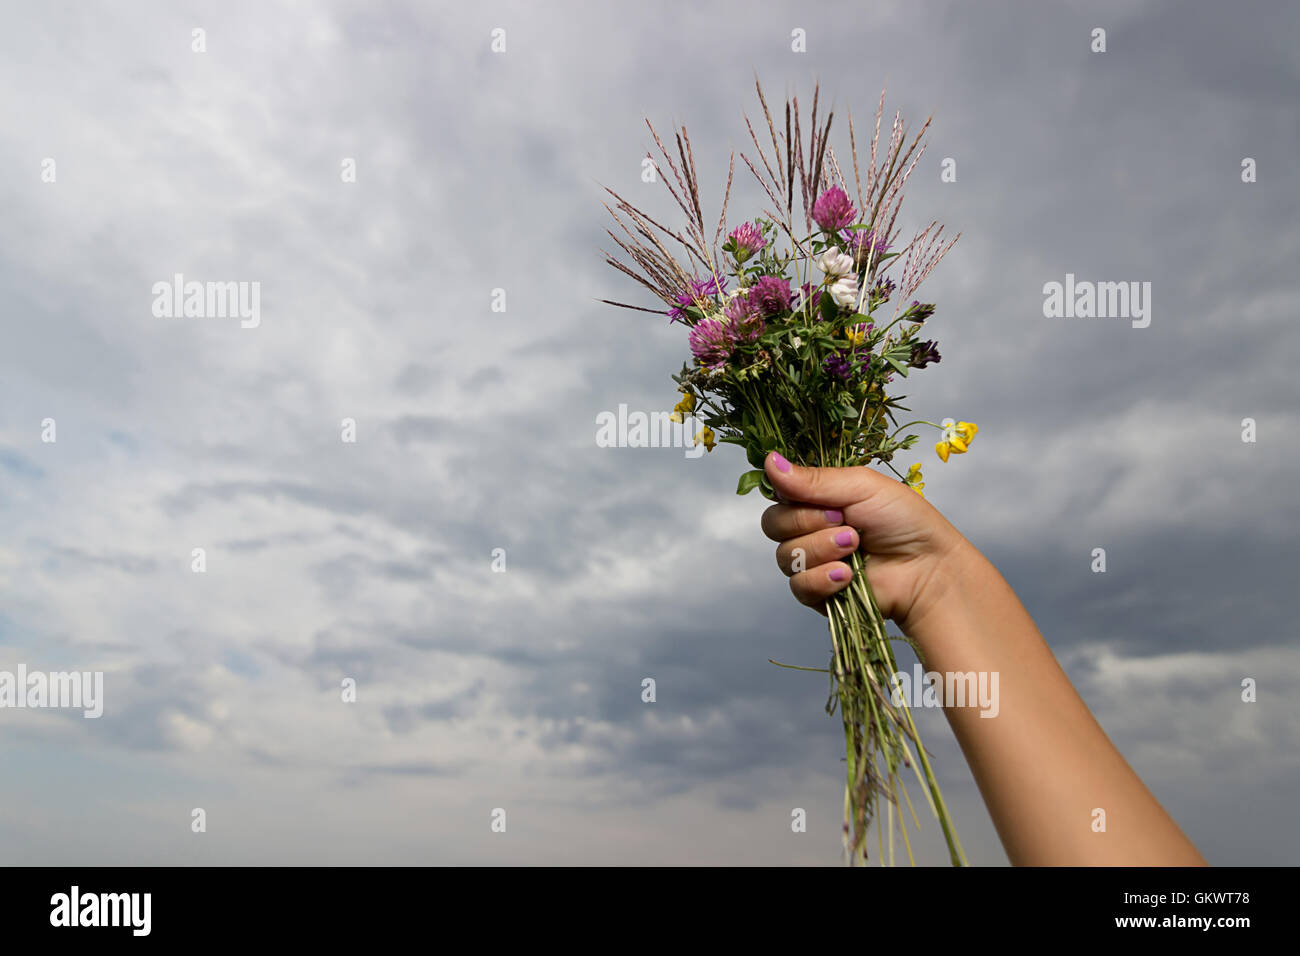 Mazzo Di Fiori The West.Wiled Flower Stock Photos Wiled Flower Stock Images Alamy